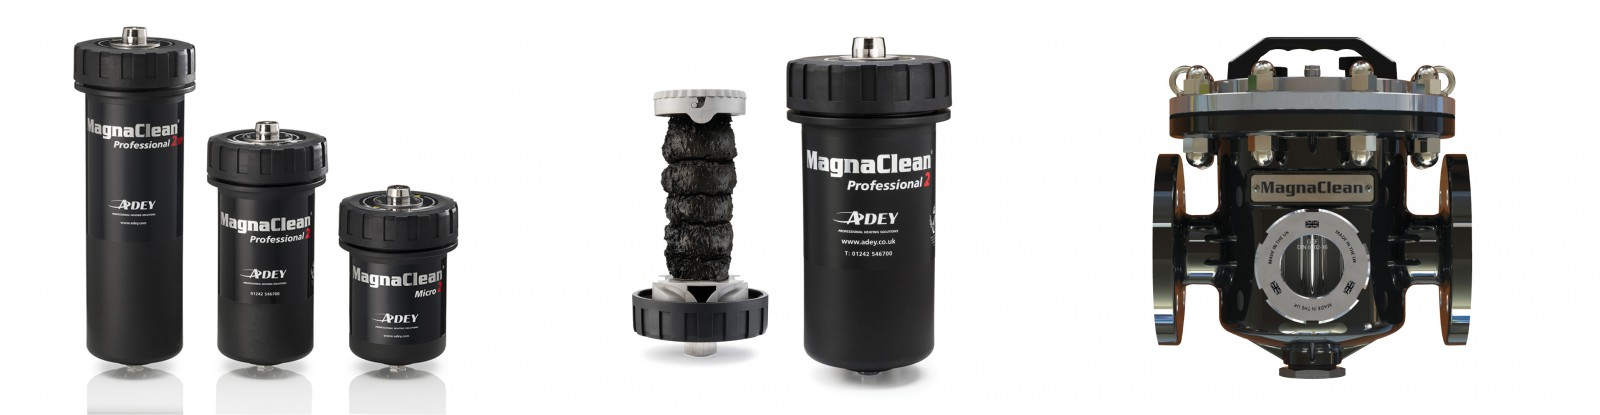 uws magnaclean magnetflussfilter bergmann franz. Black Bedroom Furniture Sets. Home Design Ideas